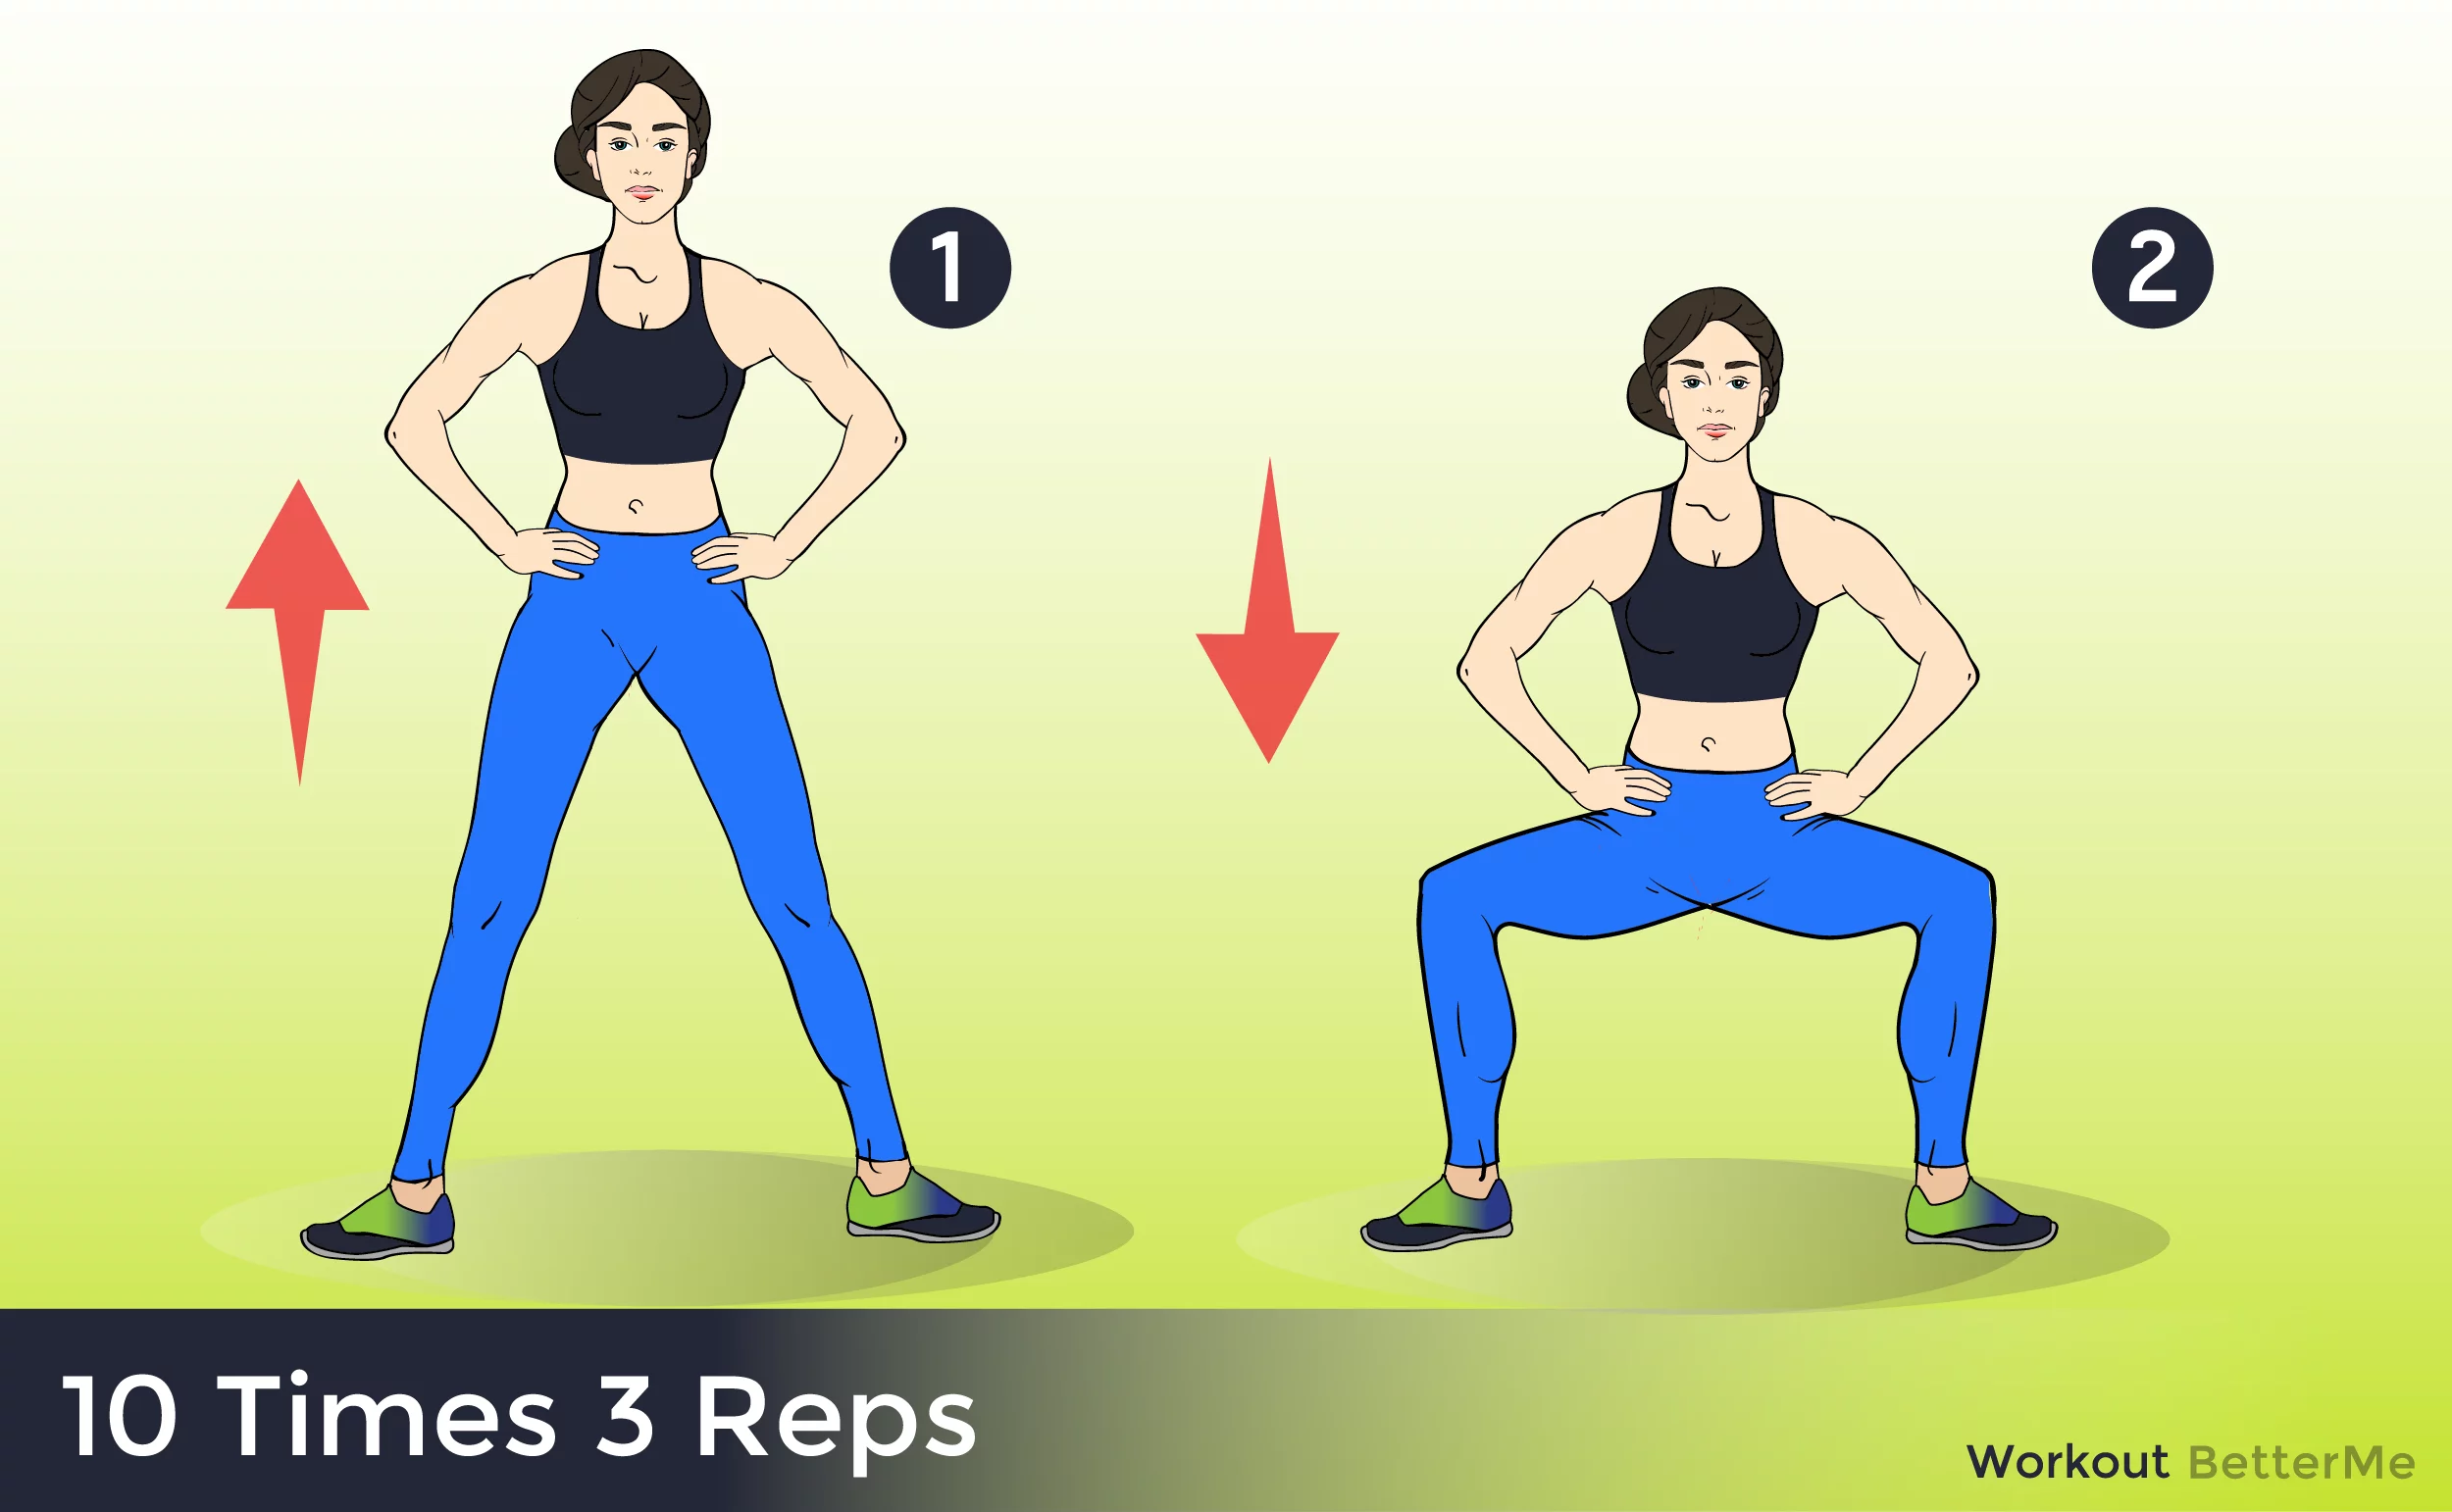 This lazy workout can help you tone the whole body